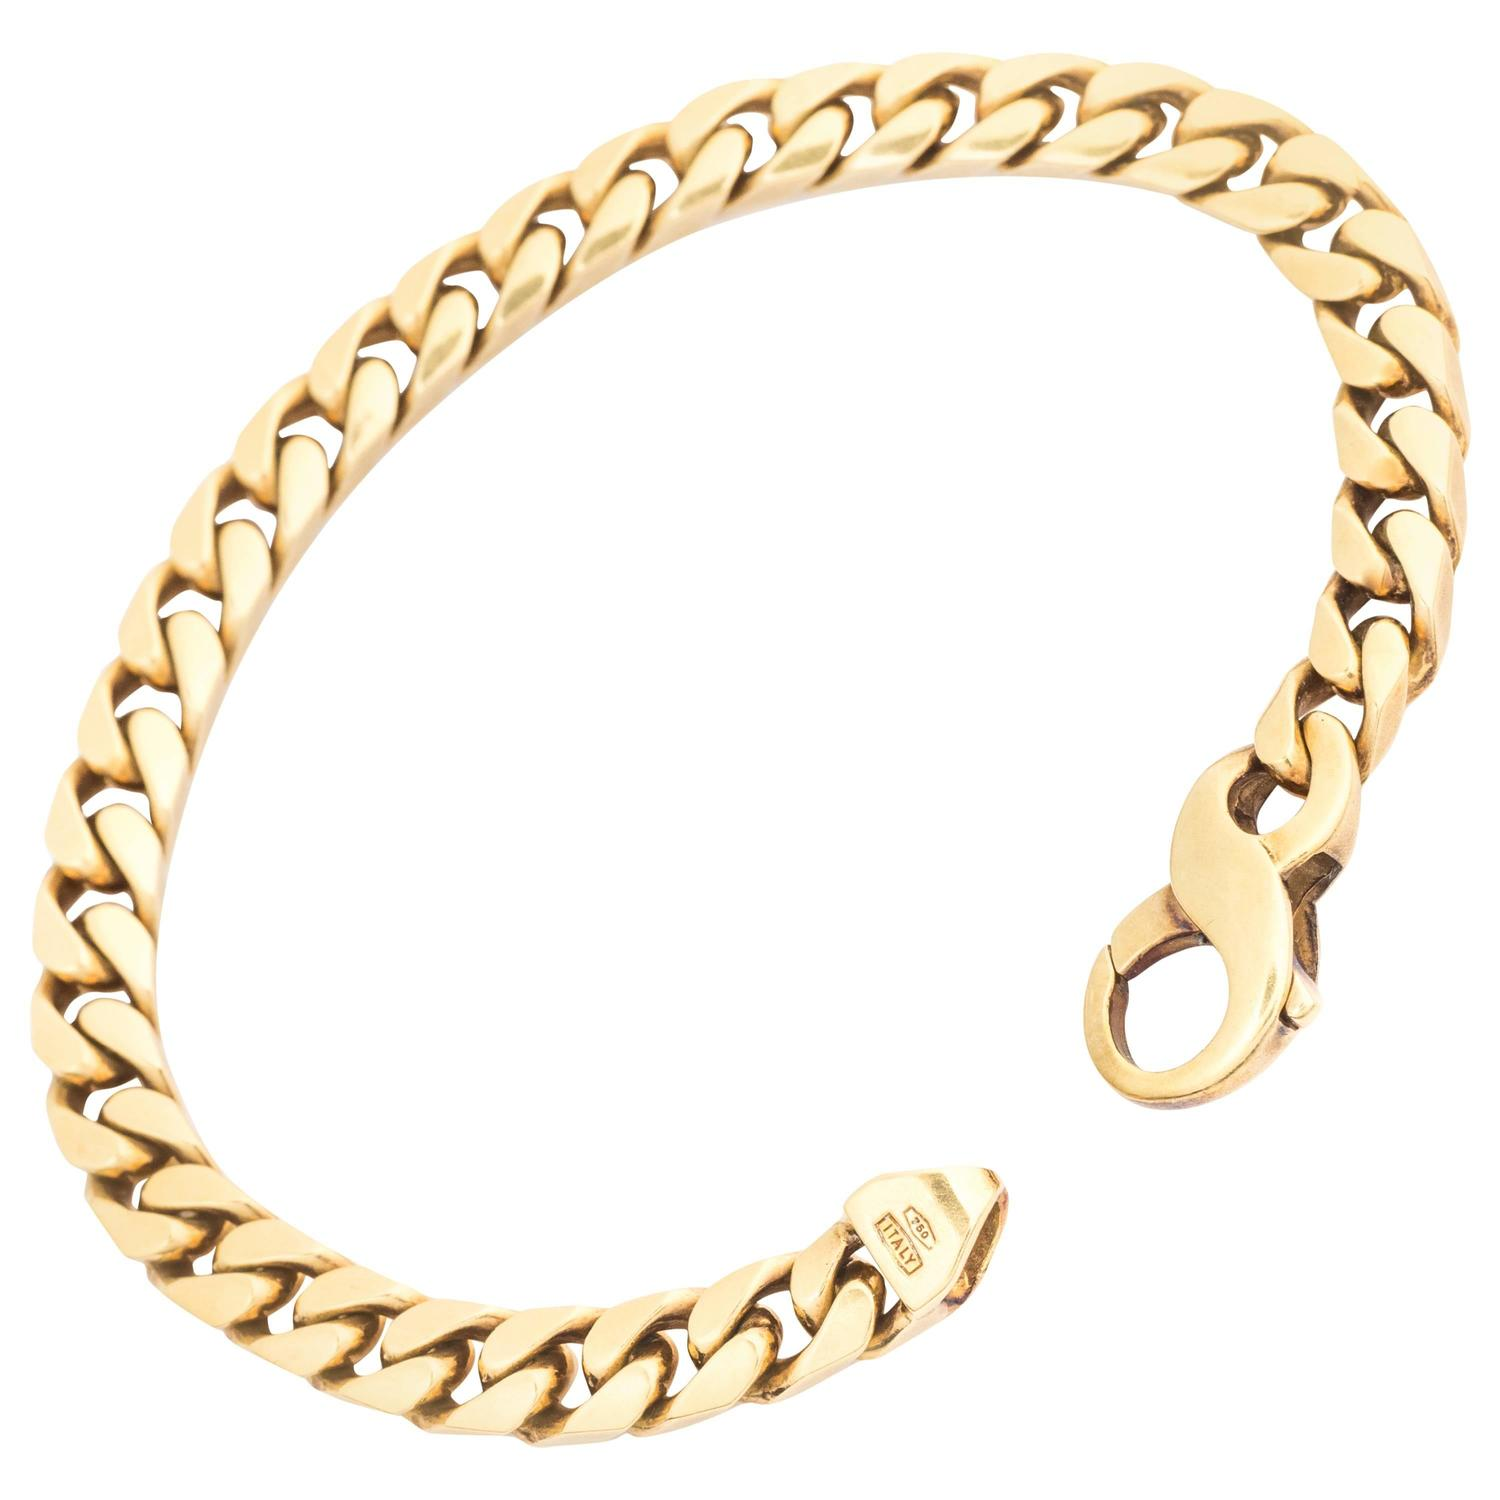 karat chain jewelry link isla bracelet watches necklace free product clasp gold plated with today rope shipping simone overstock electro com